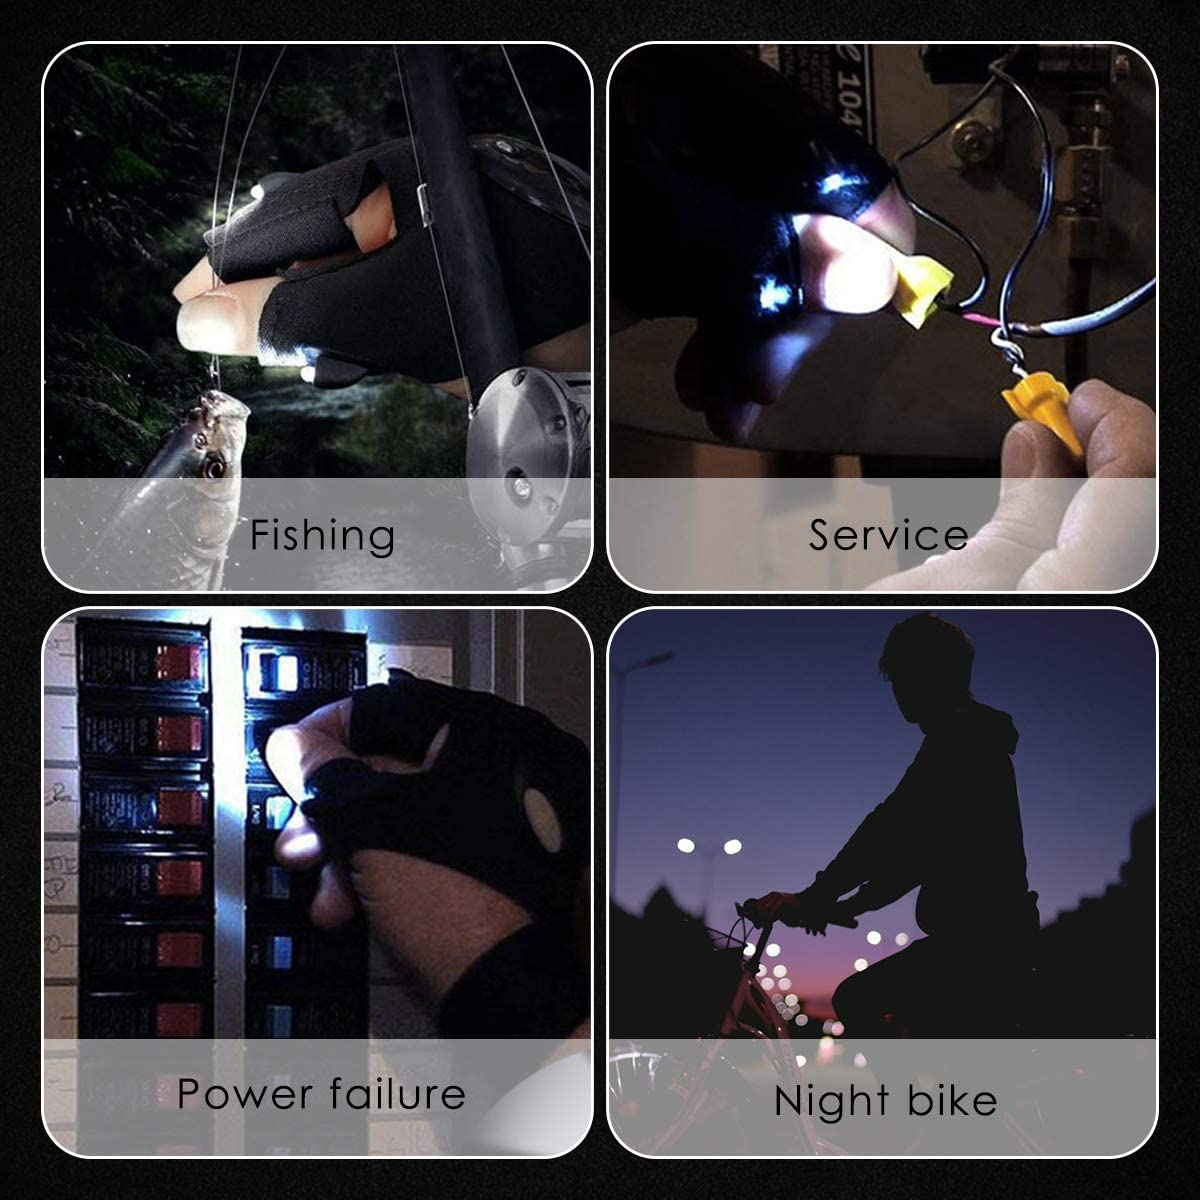 Cycling and Outdoor Activities Light Gloves Outdoor Fishing Gloves Perfect for Camping Cool Gift for Men LED Flashlight Gloves 2 Pairs Fishing Night Running Birthday Gifts for Man and Woman